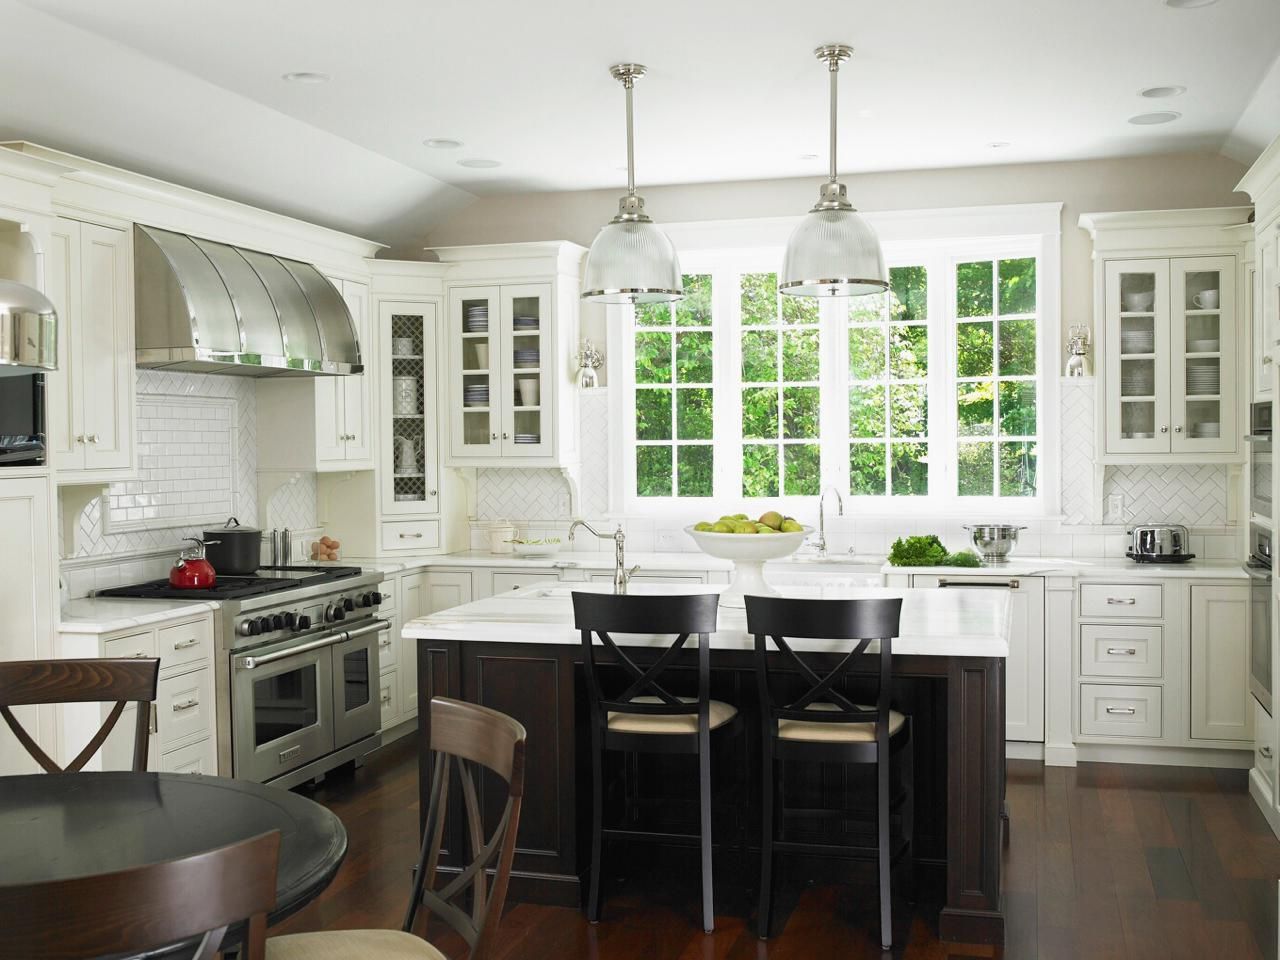 kitchen remodels with white cabinets pictures roy home design. Black Bedroom Furniture Sets. Home Design Ideas